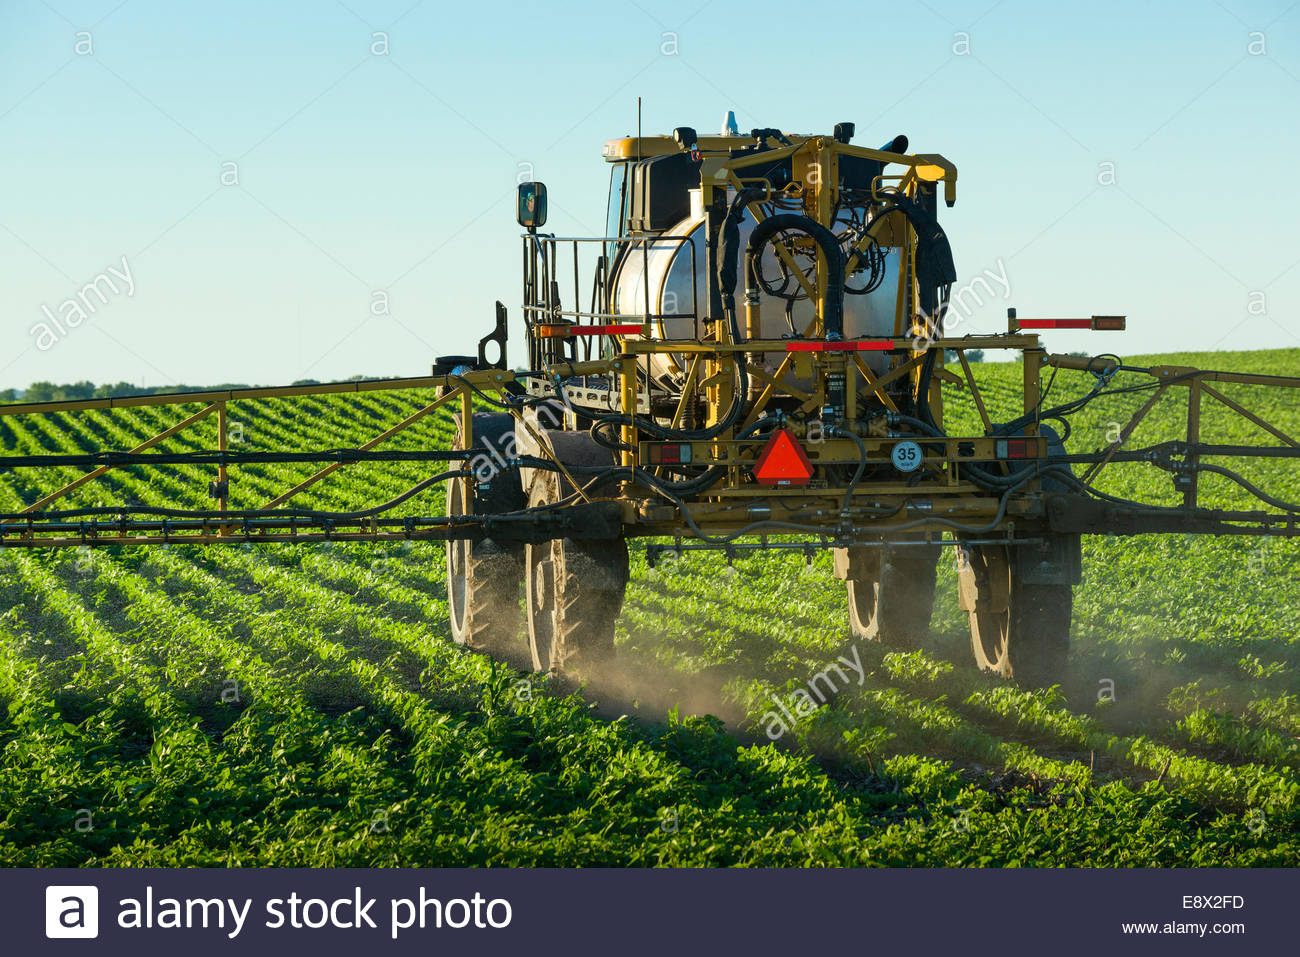 A commercial sprayer applies herbicide to a young, green soybean field in central Iowa to kill broadleaf weeds and - Stock Image